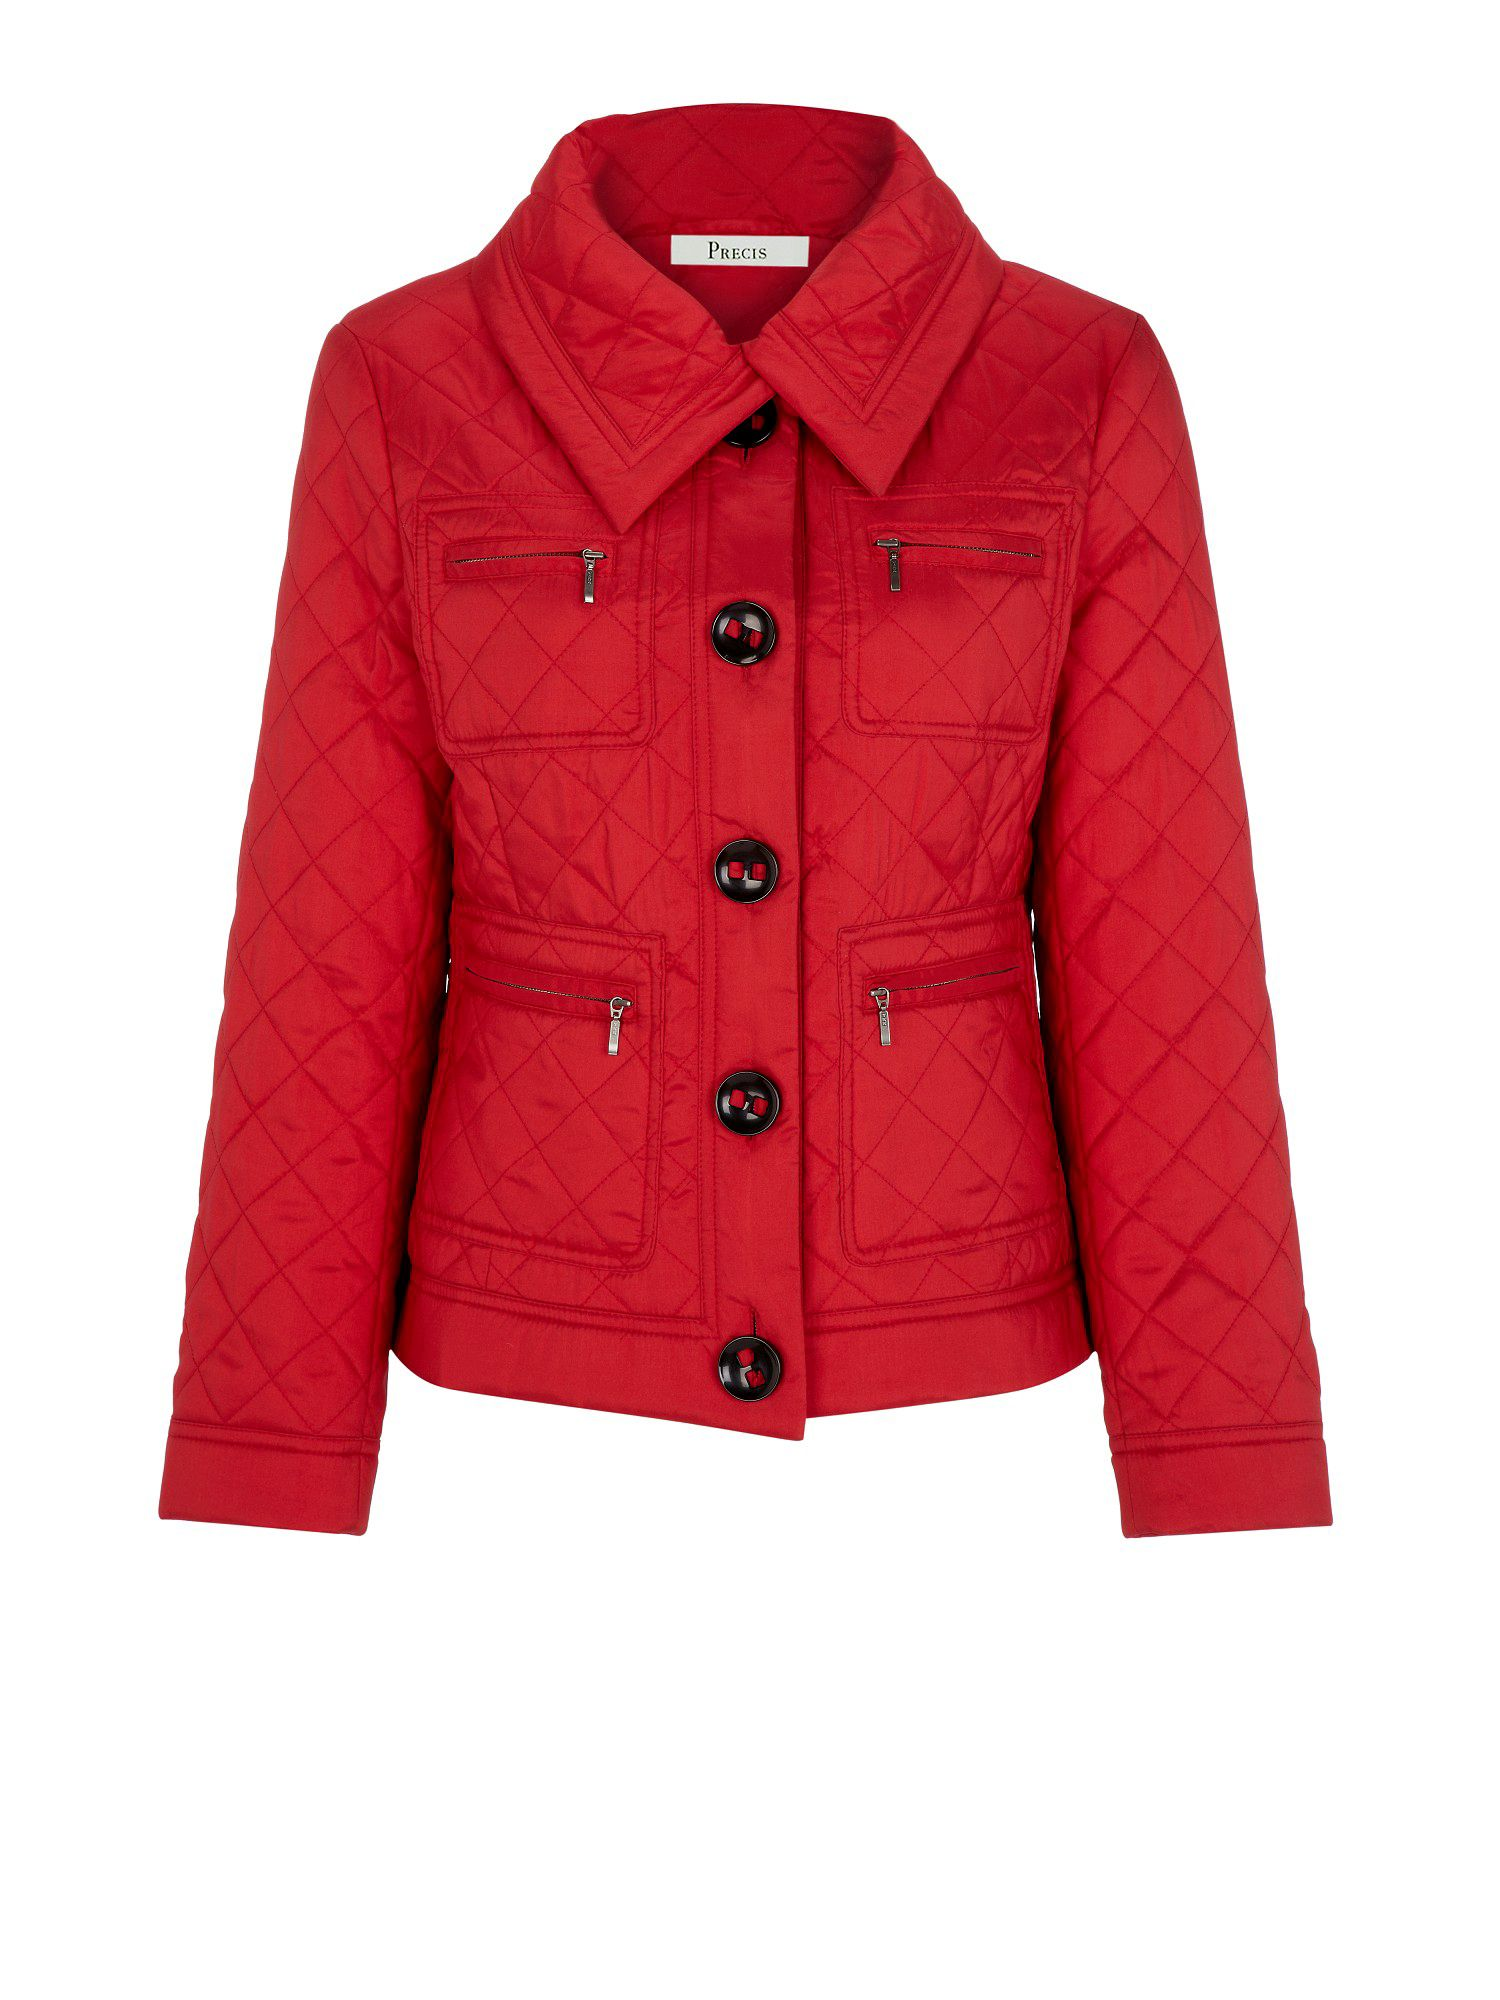 Scarlet diamond quilted jacket